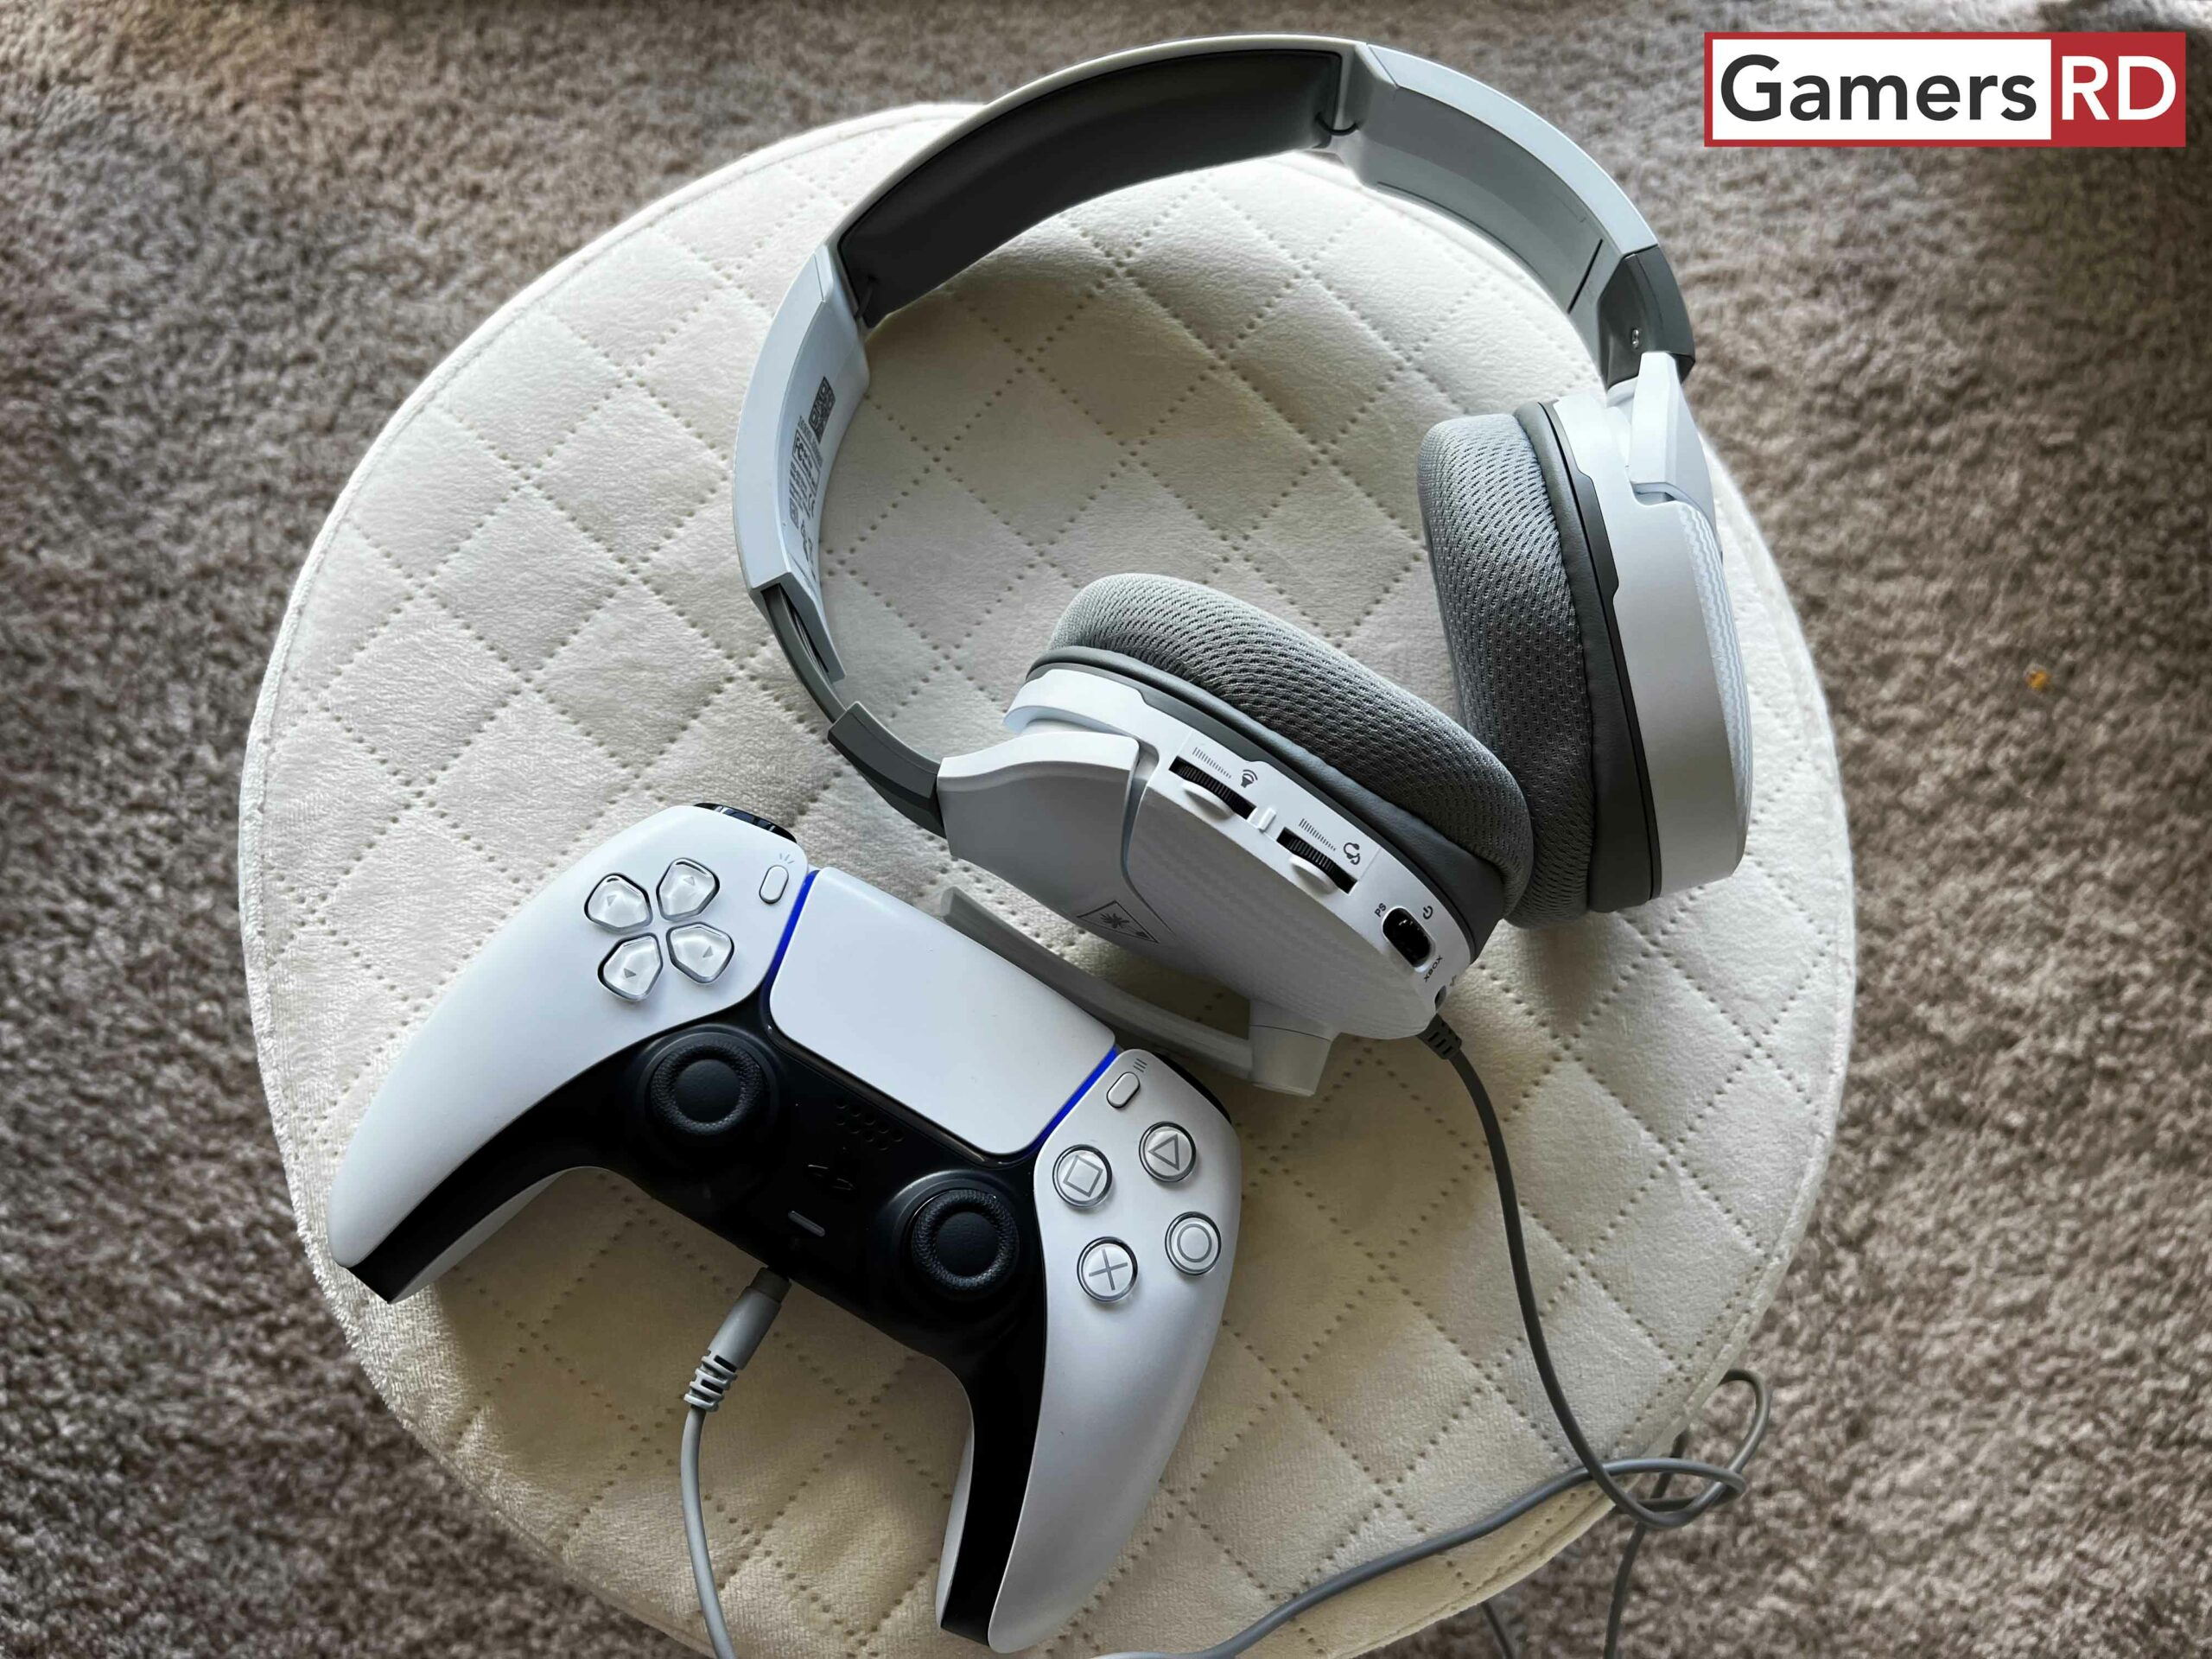 Turtle Beach Recon 200 Gen 2 Headsets Review, 4 GamersRD